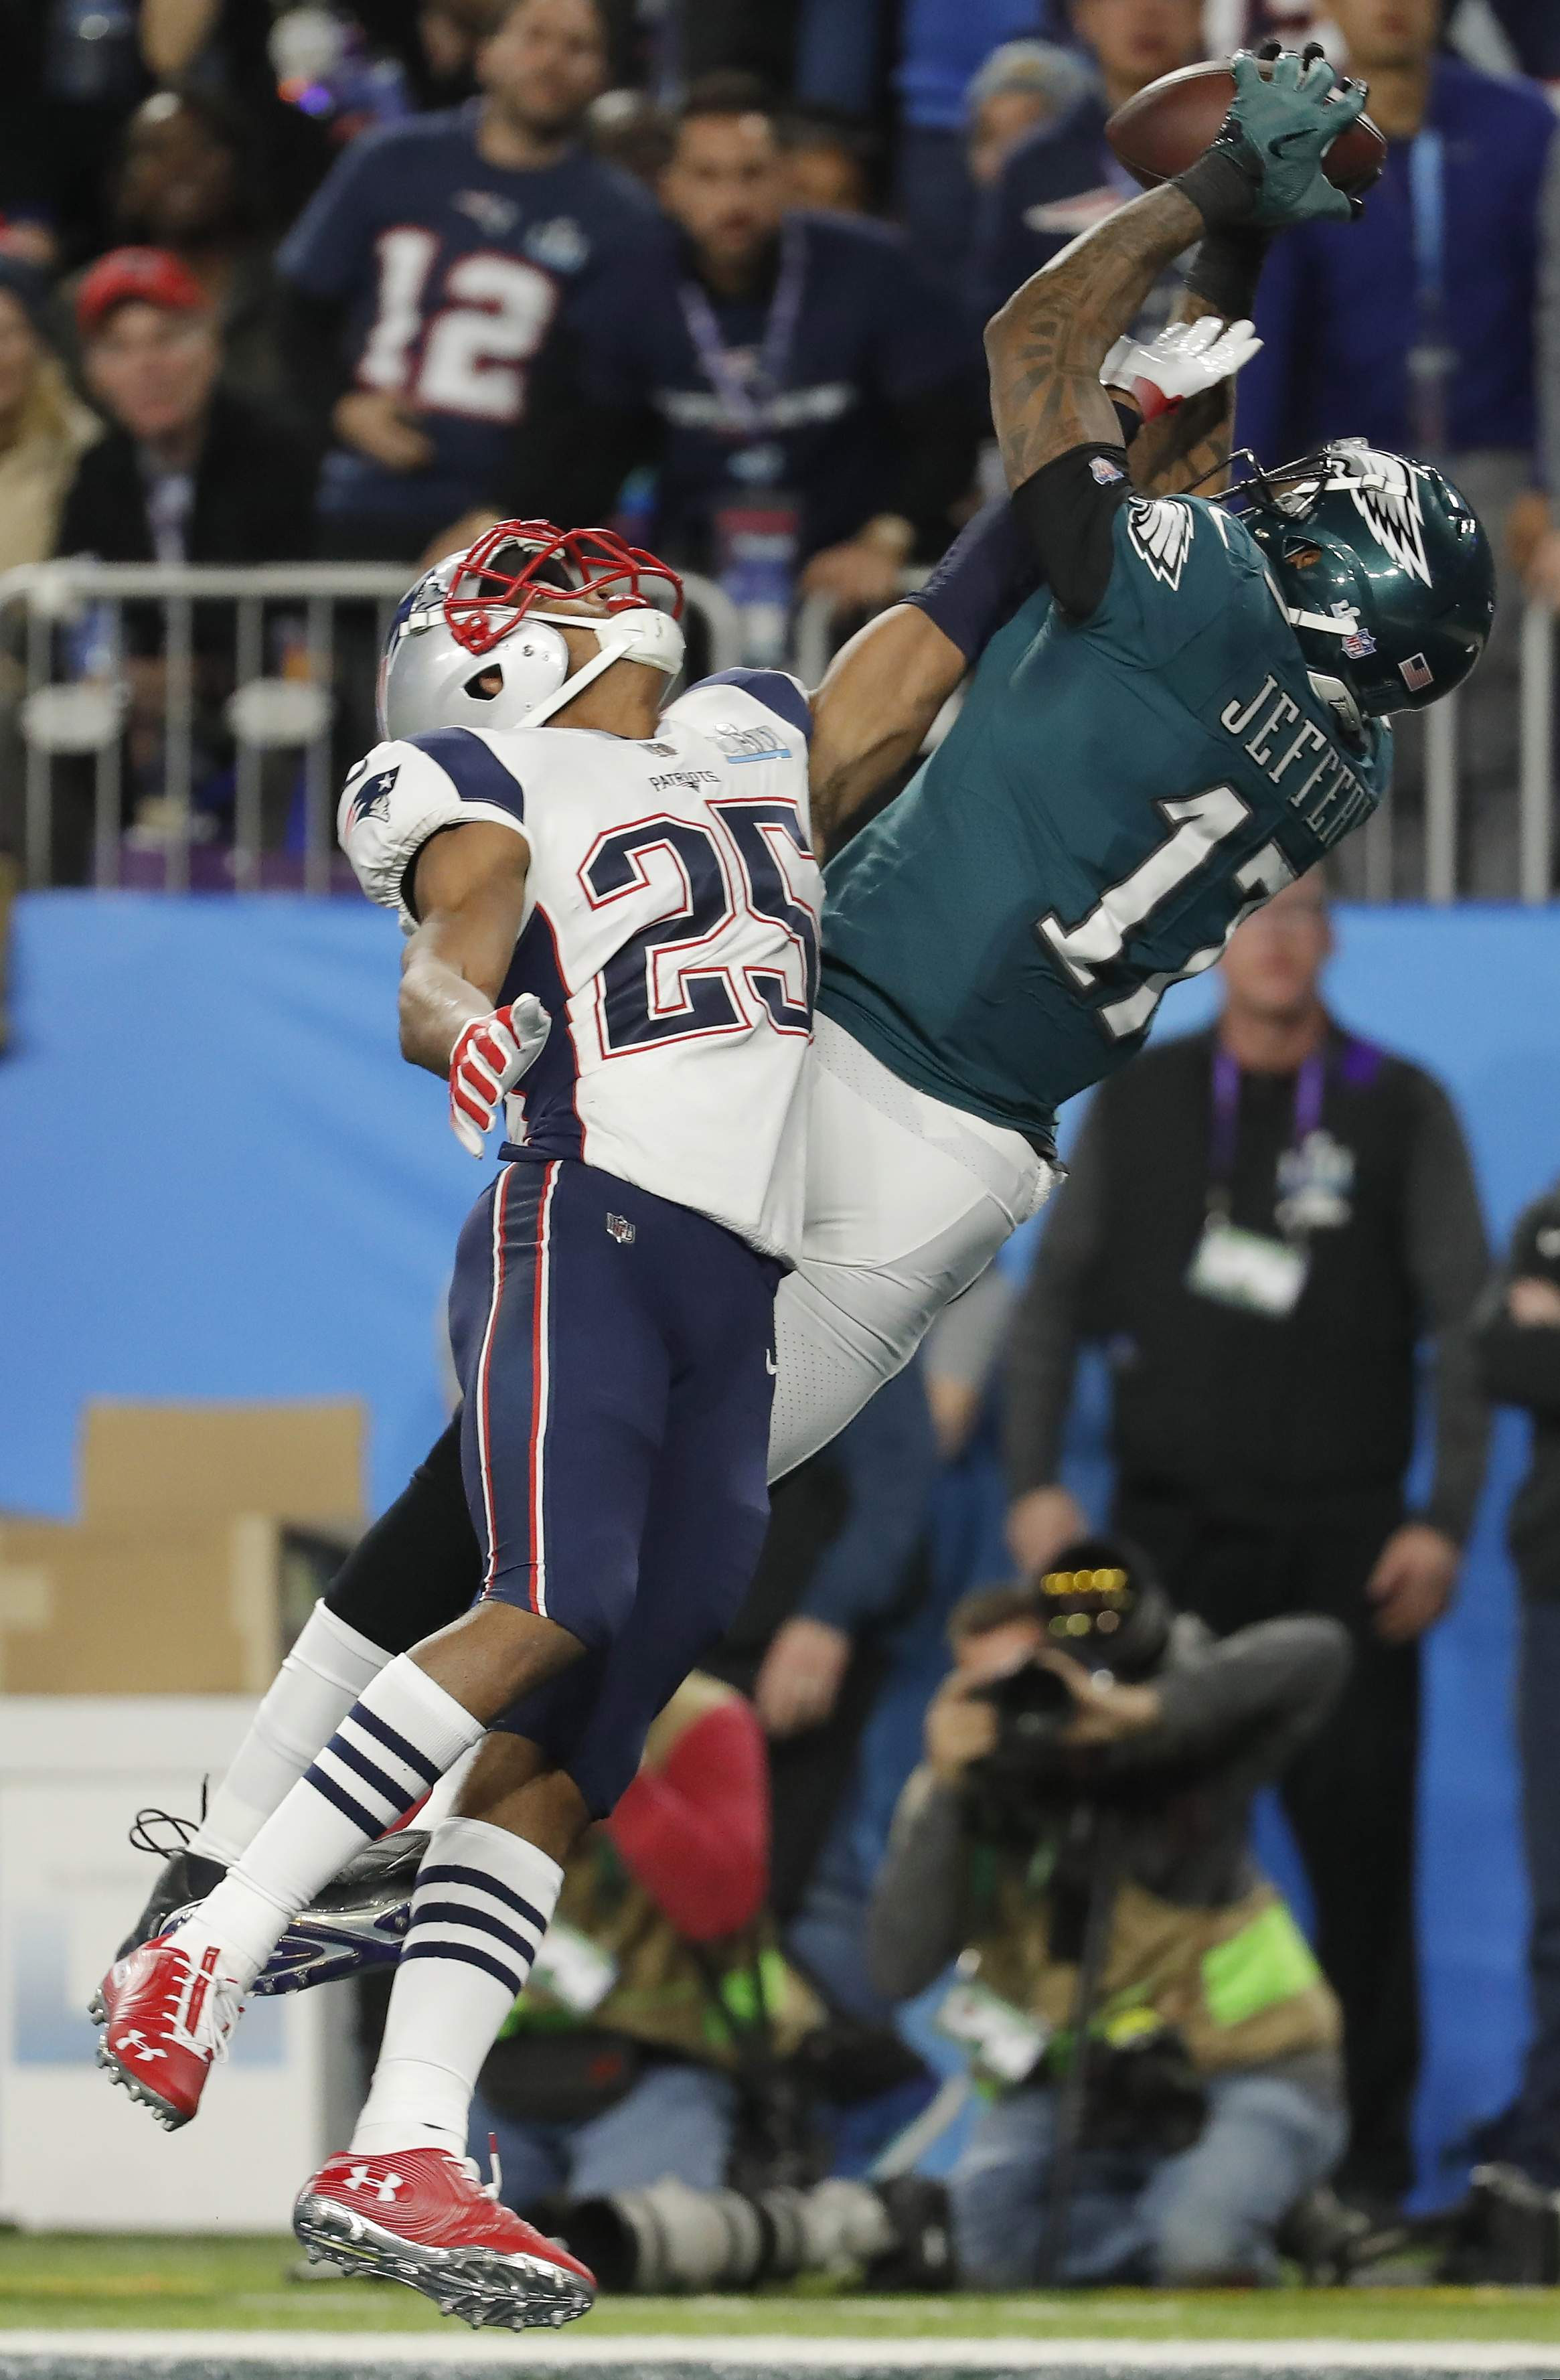 Philadelphia Eagles wide receiver Alshon Jeffery (17), makes a touchdown catch against New England Patriots cornerback Eric Rowe (25), during the first half of the NFL Super Bowl 52 football game, Sunday, Feb. 4, 2018, in Minneapolis. (AP Photo/Charlie Neibergall)